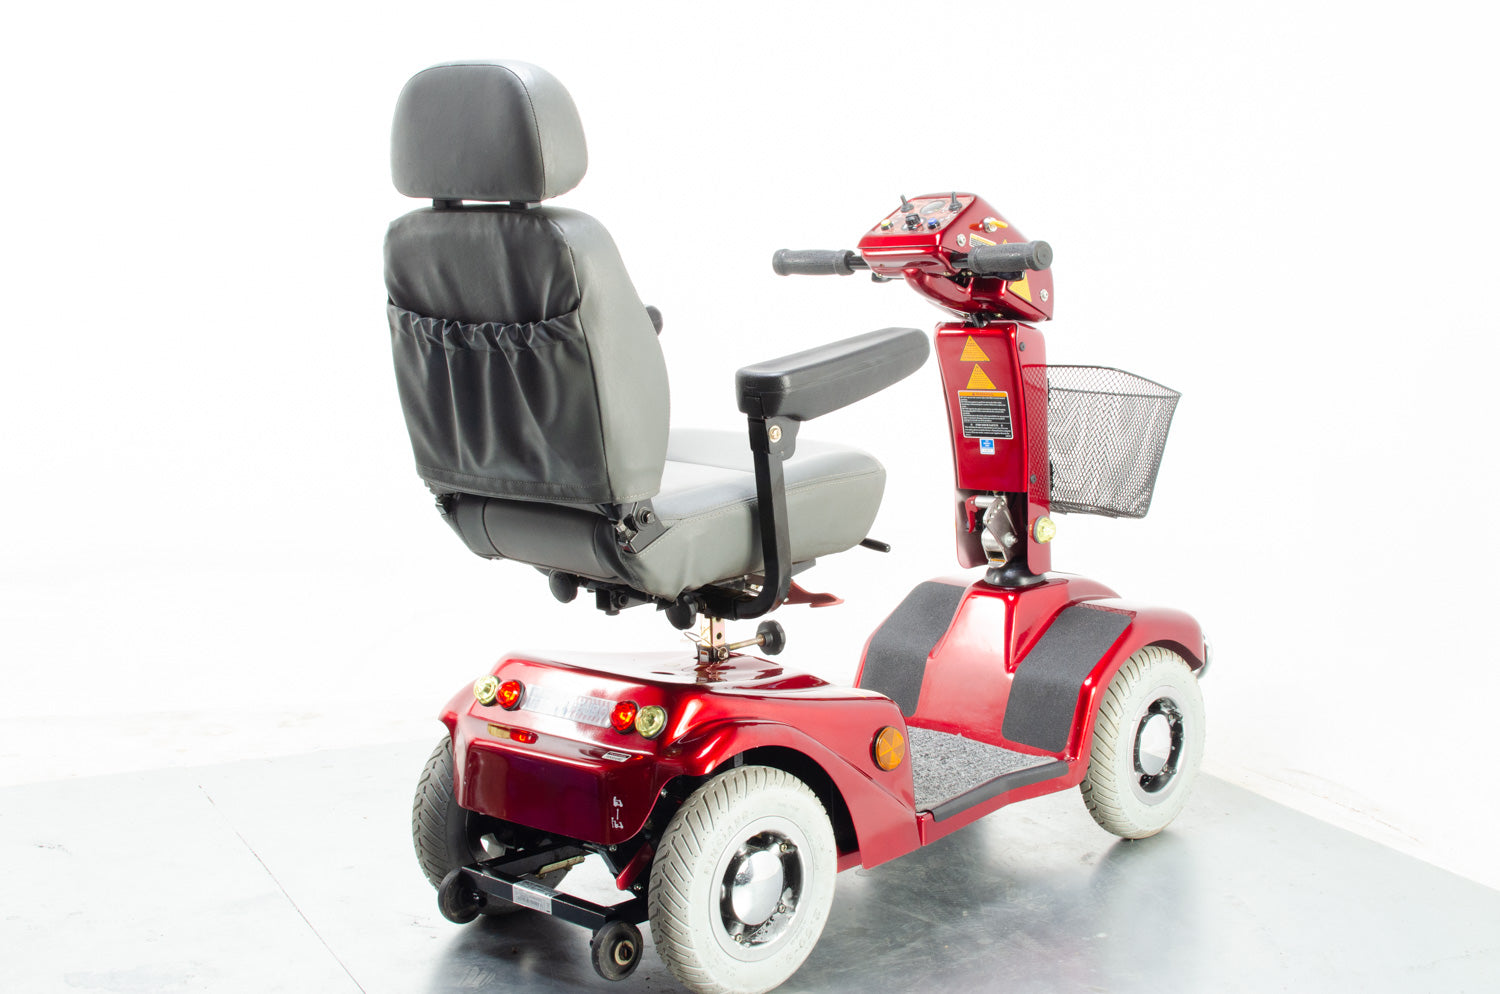 2014 Rascal 388XL 6mph Mid Size Comfort Electric Mobility Scooter in Red